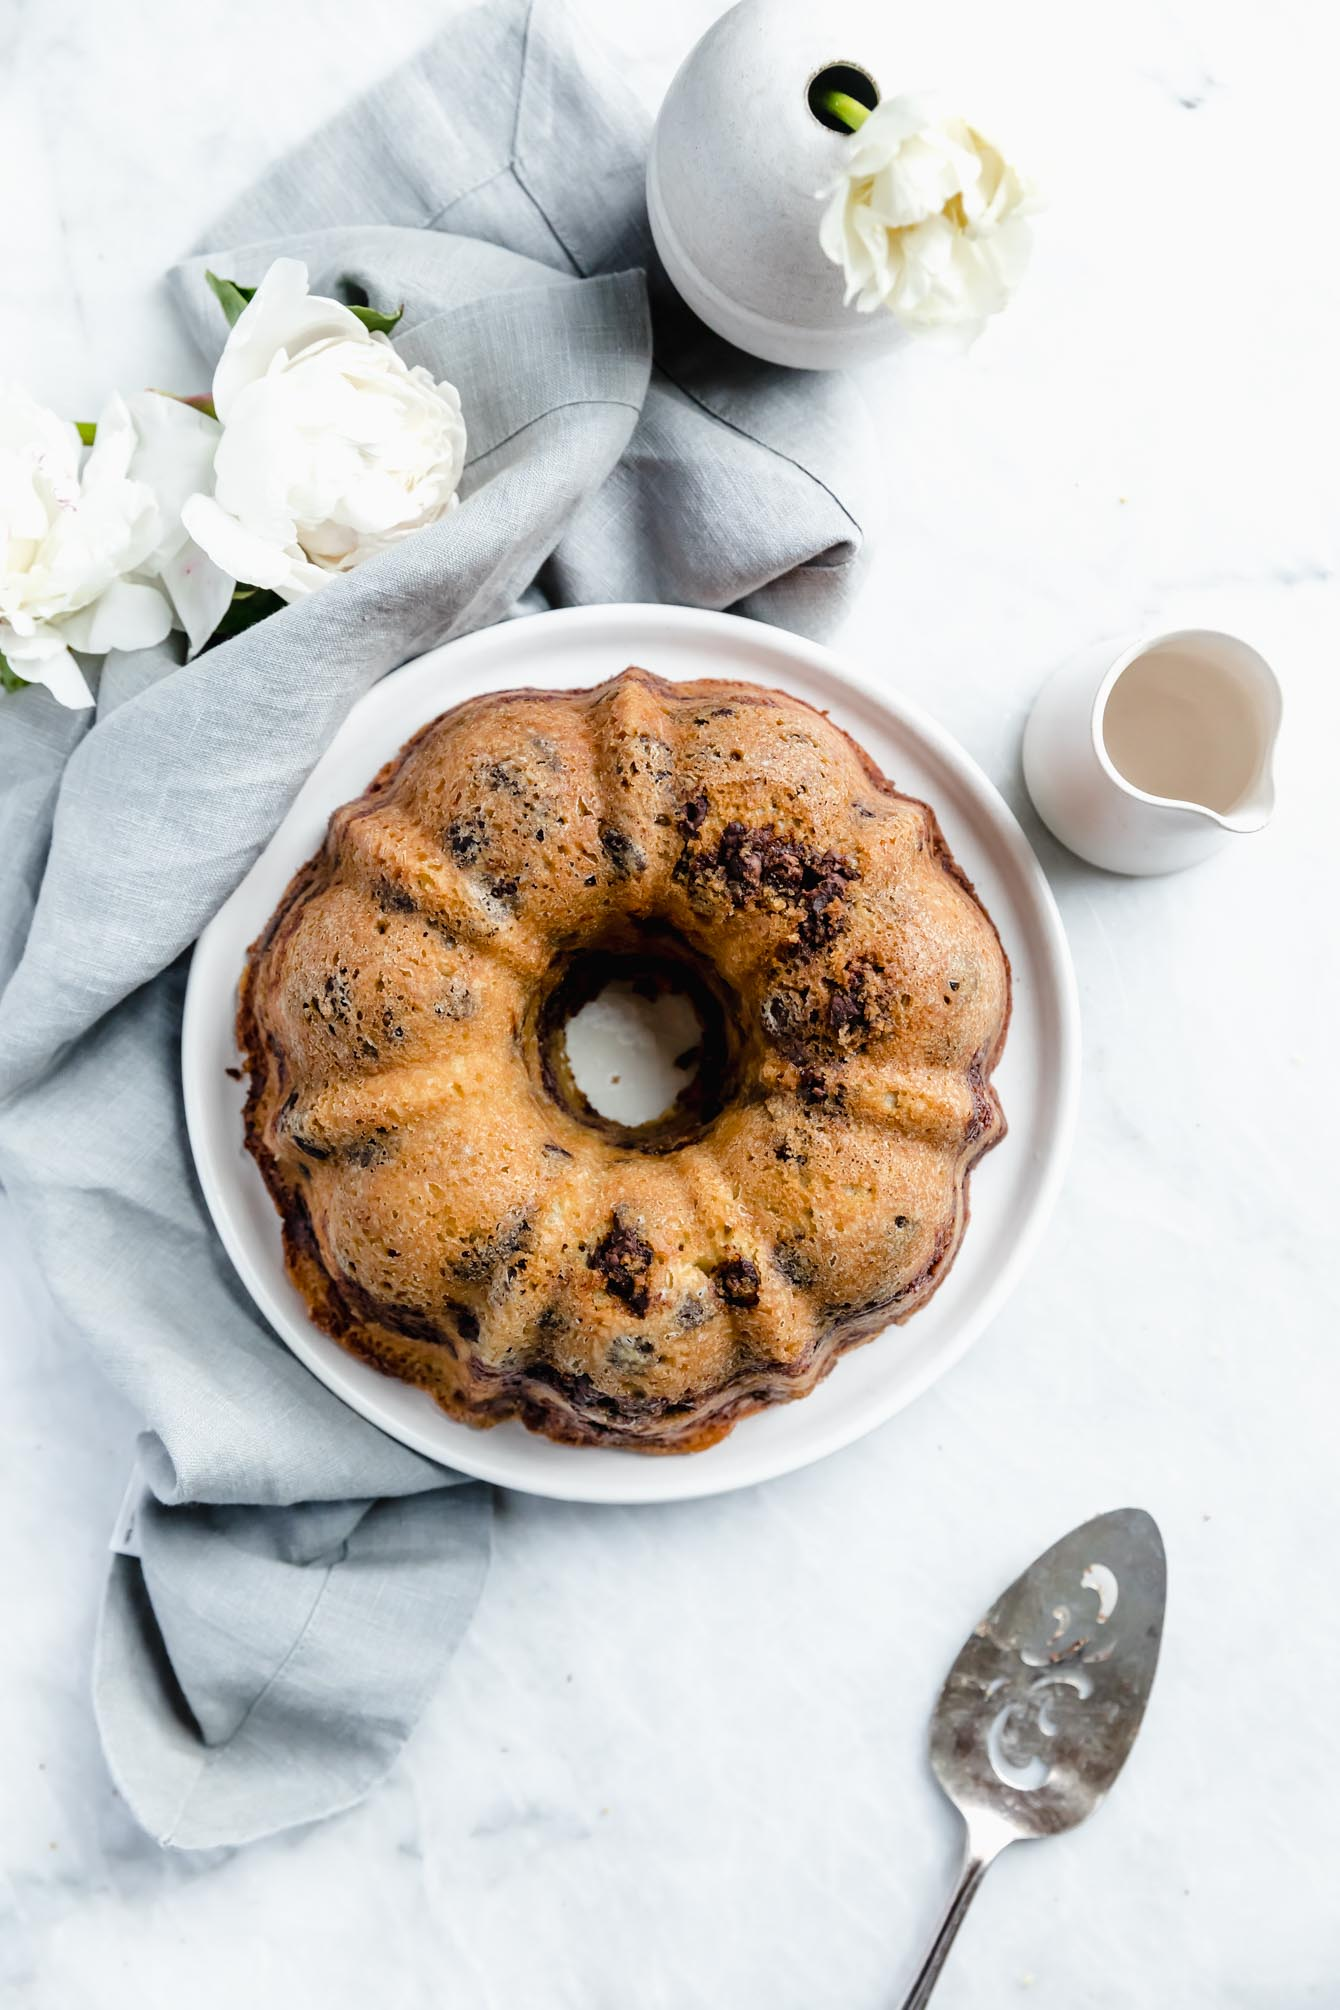 I love a good dessert disguised as breakfast. This buttery and moist Cinnamon Chocolate Chip Coffee Cake is sure to make your morning a little sweeter.